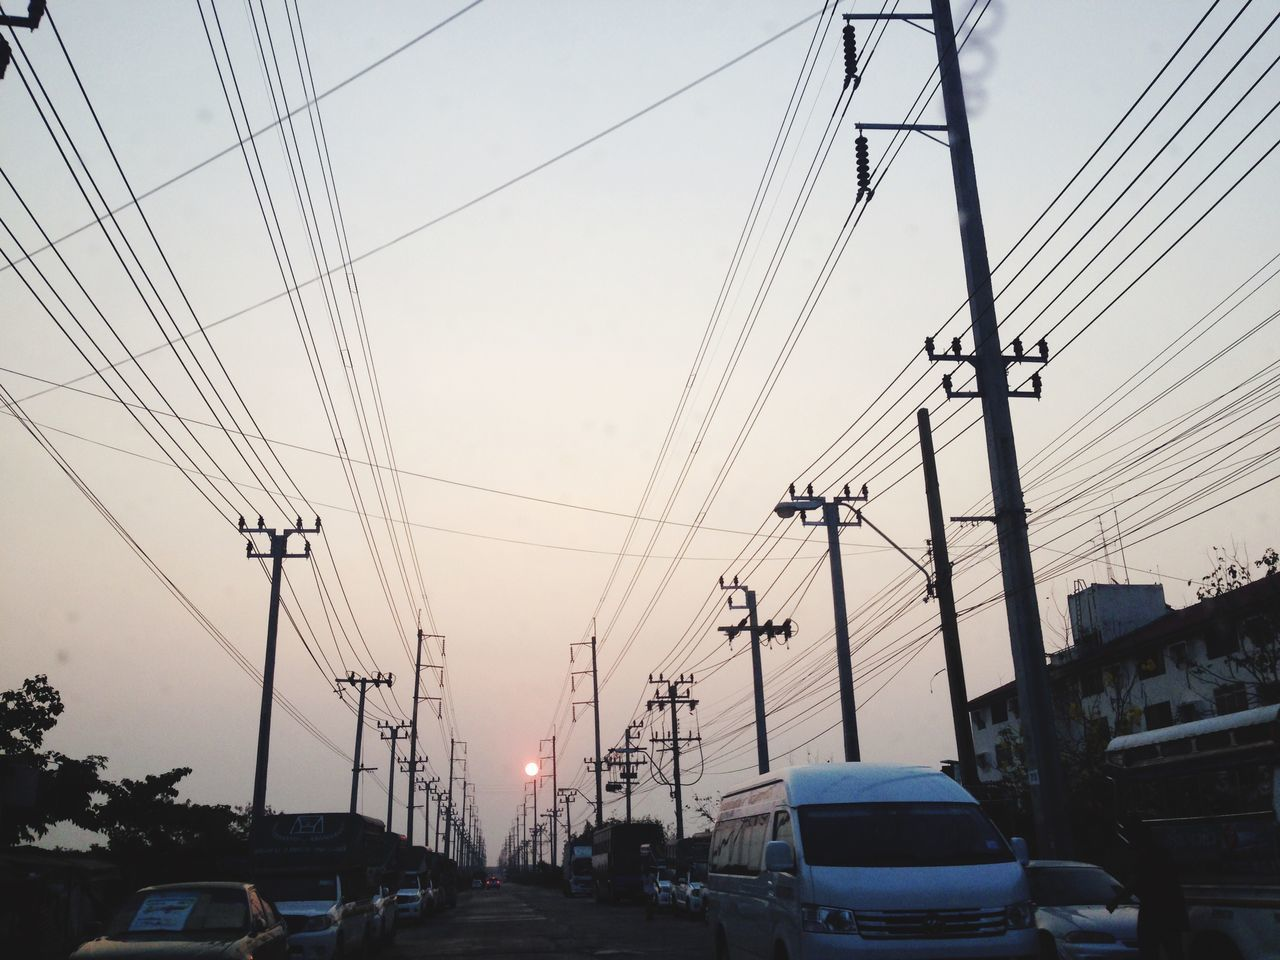 mode of transportation, cable, electricity, sky, transportation, motor vehicle, car, power line, technology, land vehicle, electricity pylon, architecture, connection, power supply, sunset, nature, city, no people, built structure, street, complexity, outdoors